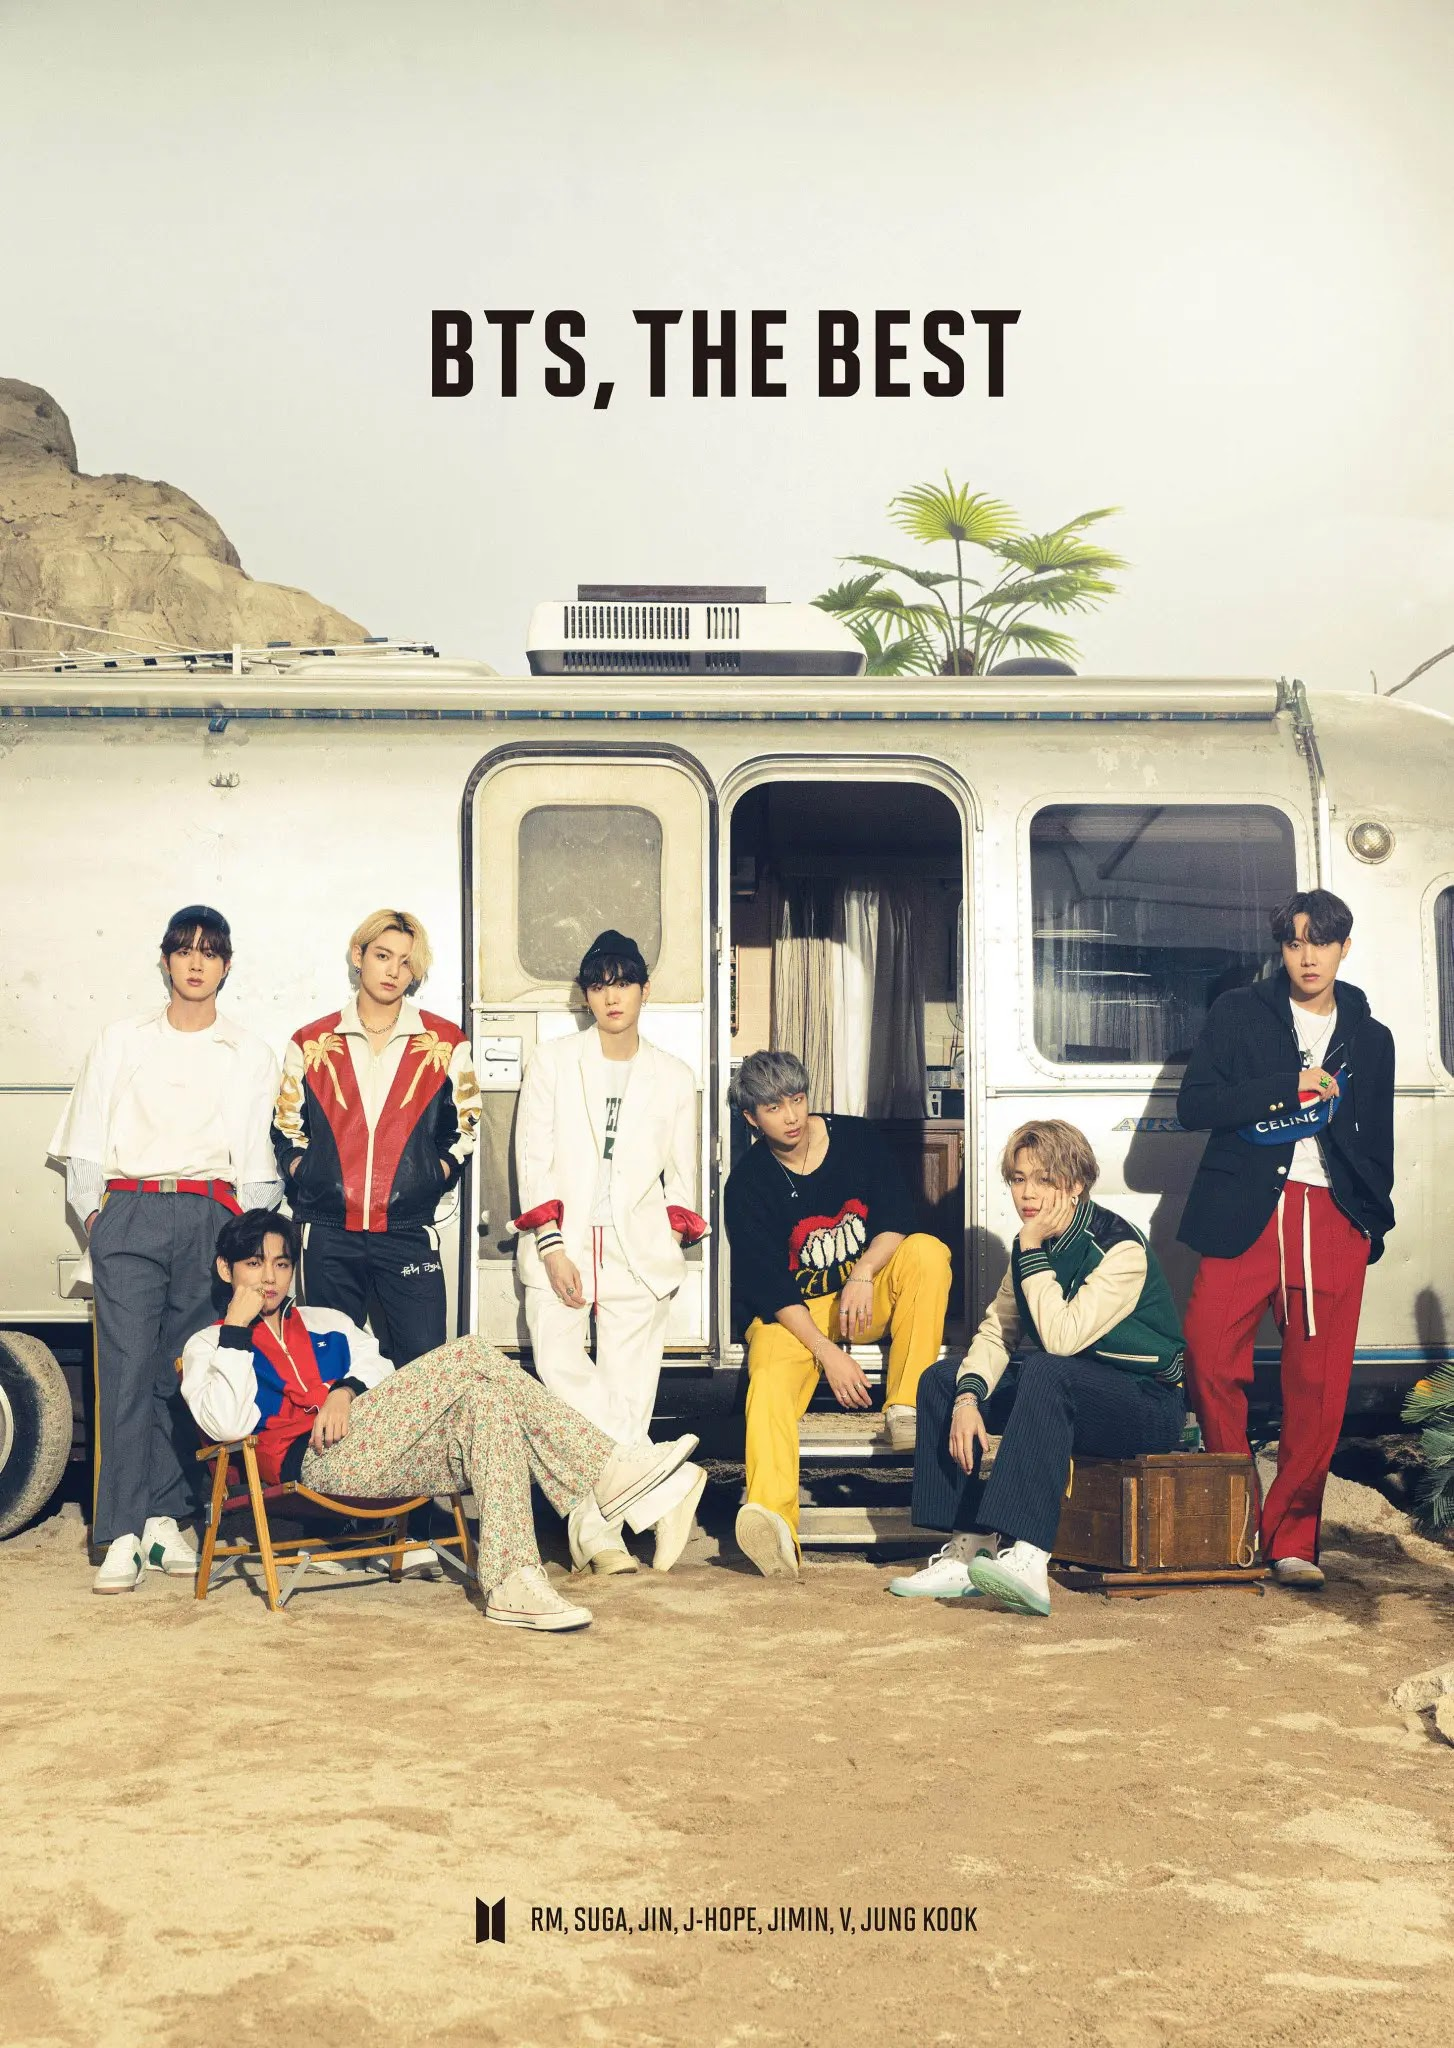 BTS Leaks The Preview Photos of Japanese Album 'BTS, THE BEST'